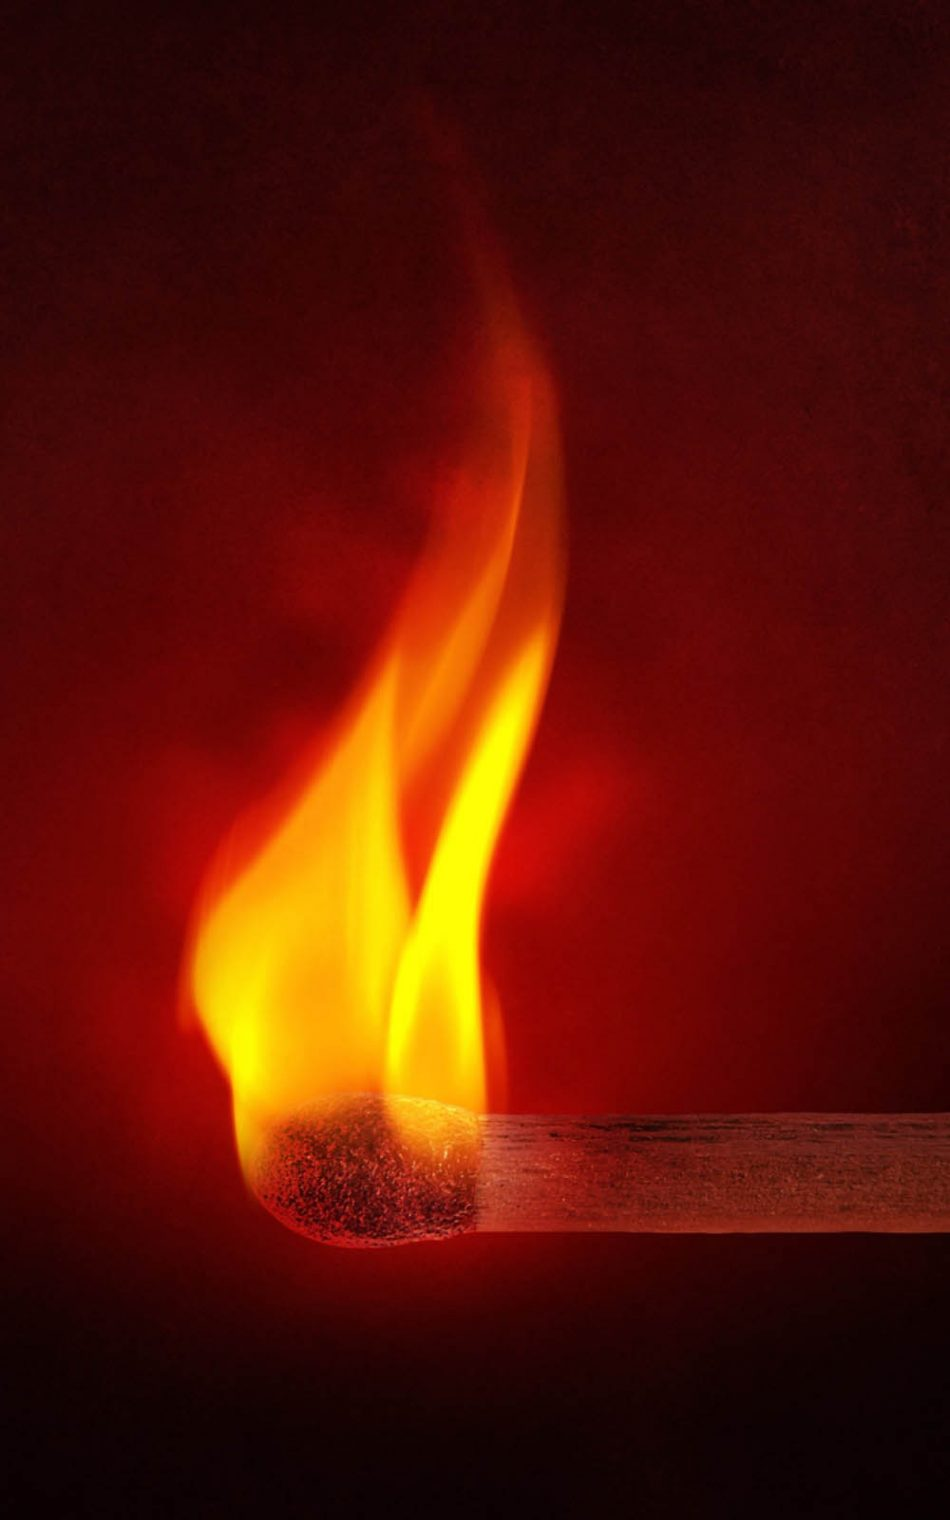 Download Match Fire Flame Free Pure 4k Ultra Hd Mobile Wallpaper